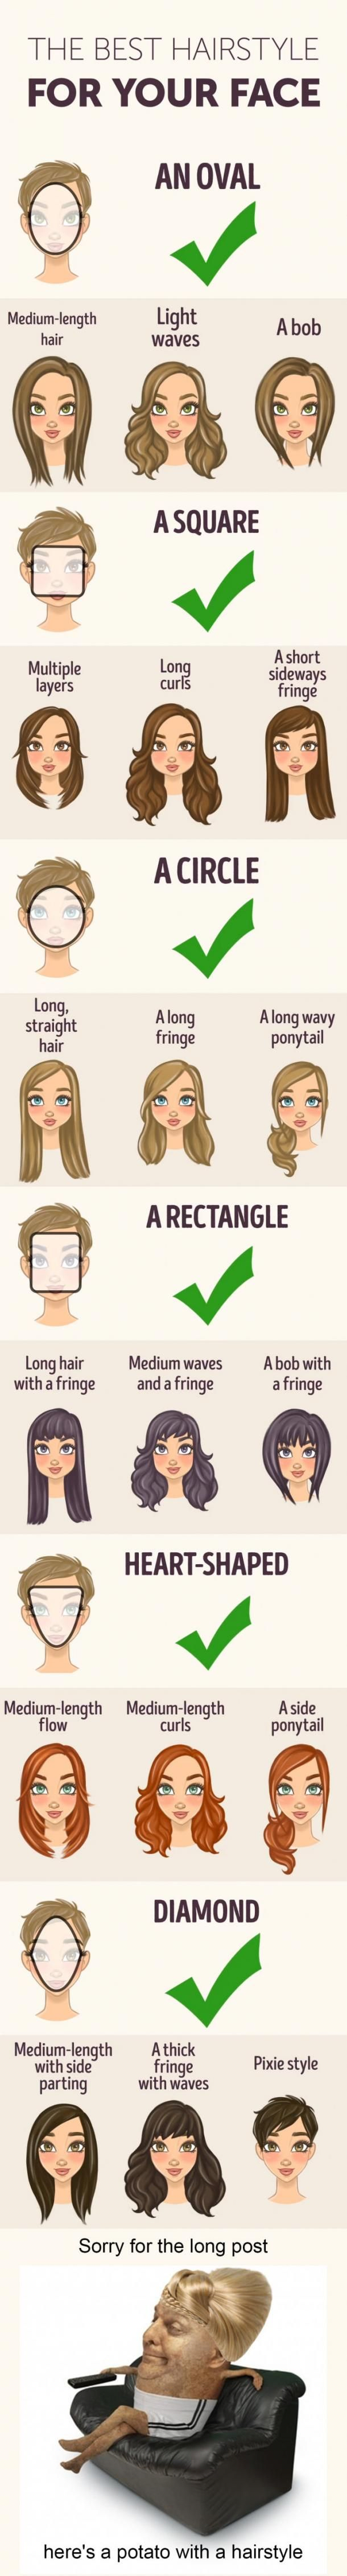 Find your hair style I'm a rectangle so I go for some fringe and light beach waves daily